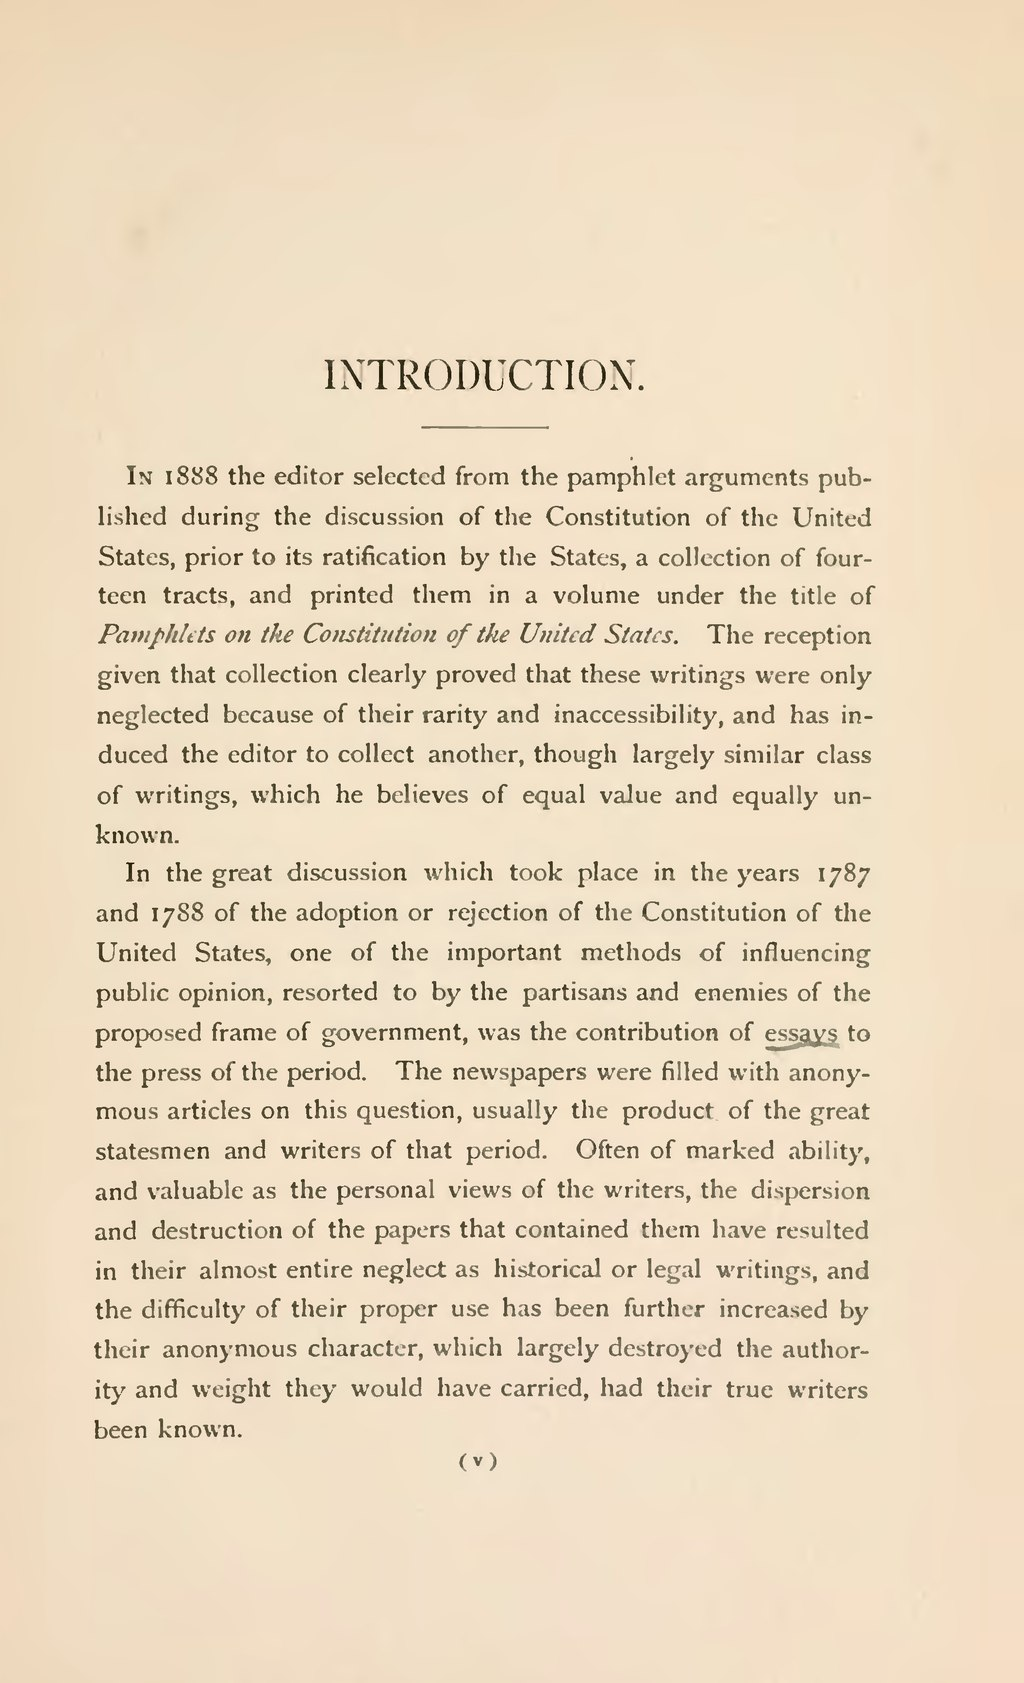 Science And Religion Essay Pageessays On The Constitution Of The United States Published During Its  Discussion By The People Djvu  Wikisource The Free Online  Library Business Management Essay Topics also Reflection Paper Example Essays Pageessays On The Constitution Of The United States Published  Good Topic For A Persuasive Essay